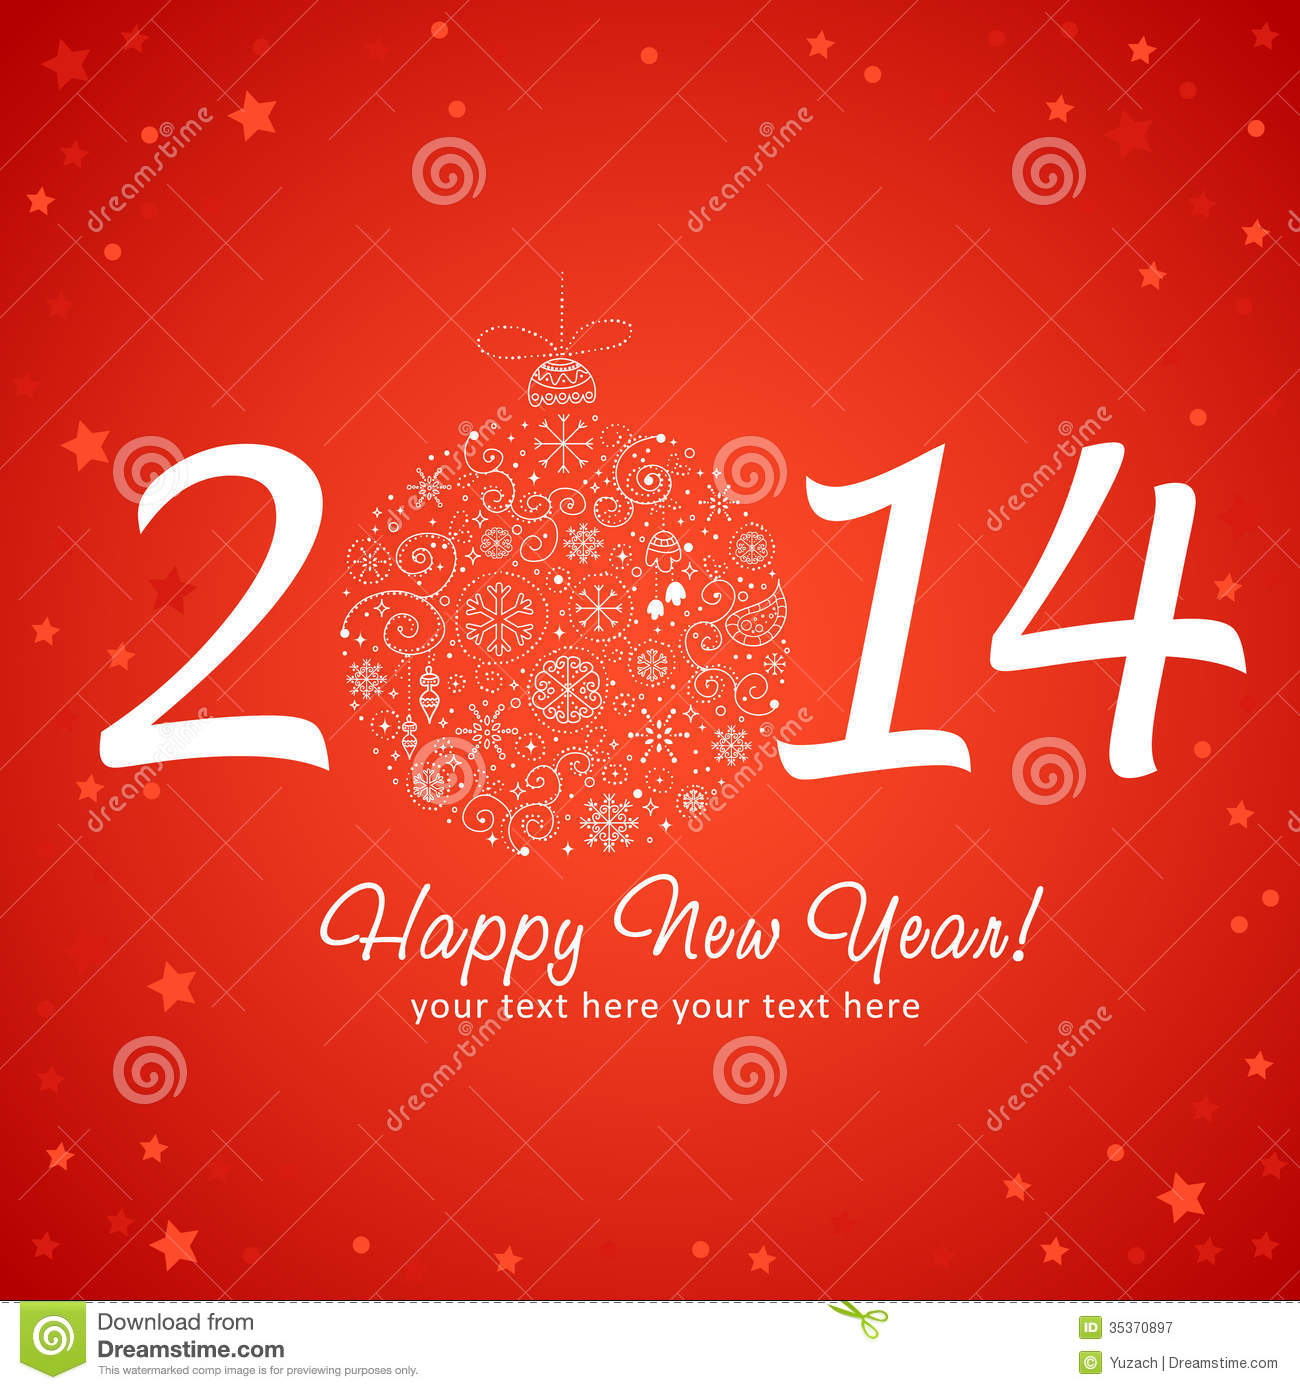 2014 Happy New Year Greeting Card Stock Vector Illustration Of